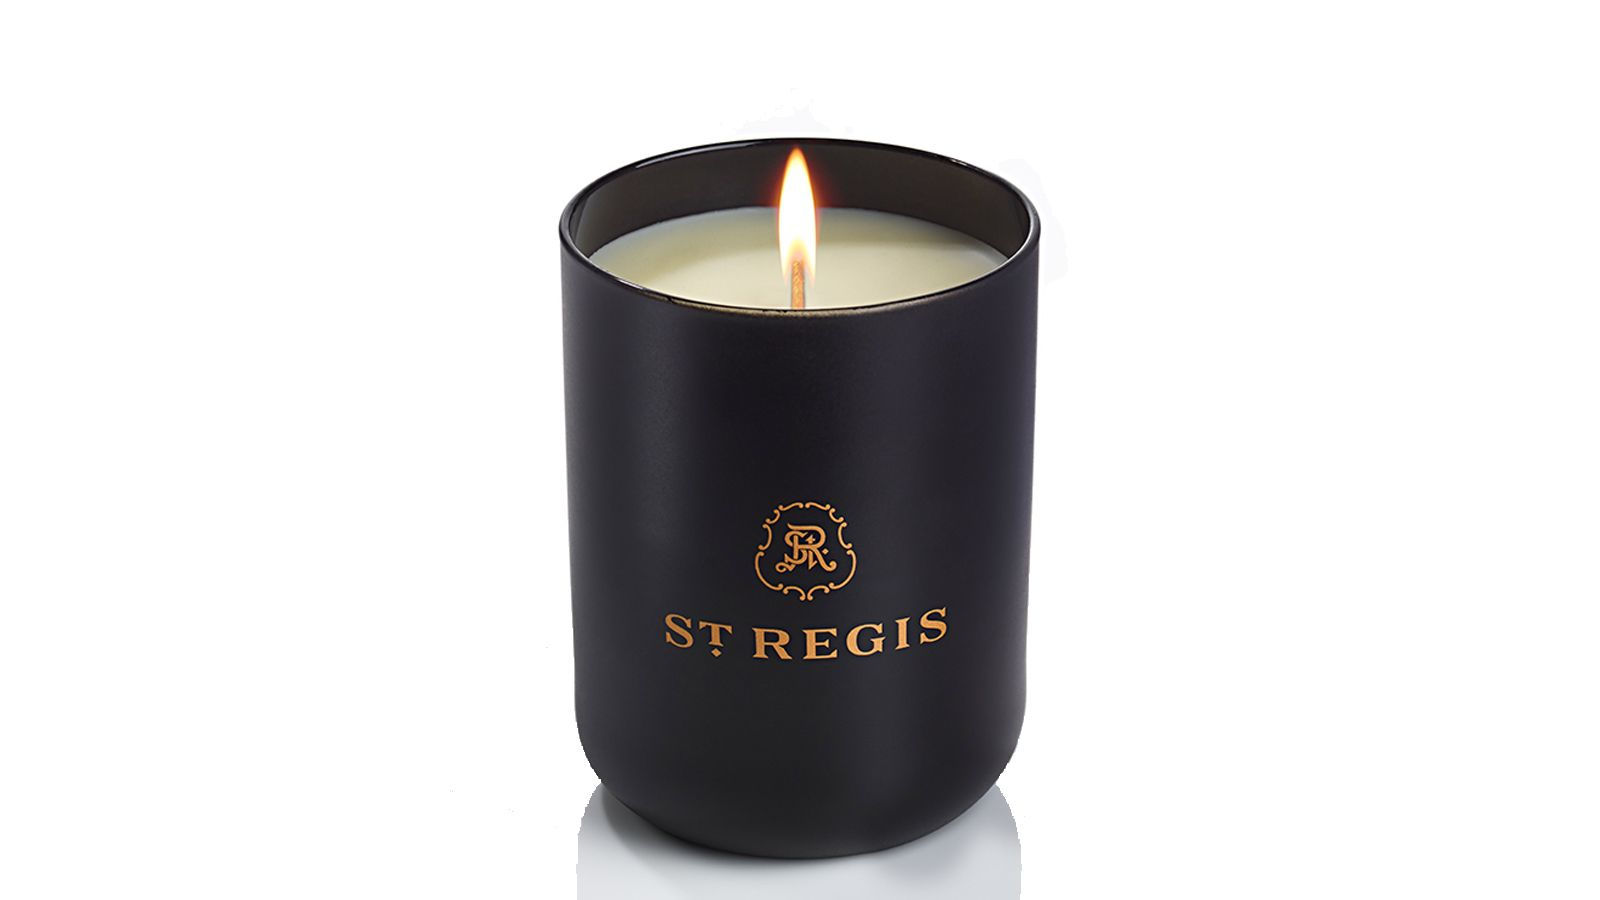 The St. Regis Scent candle